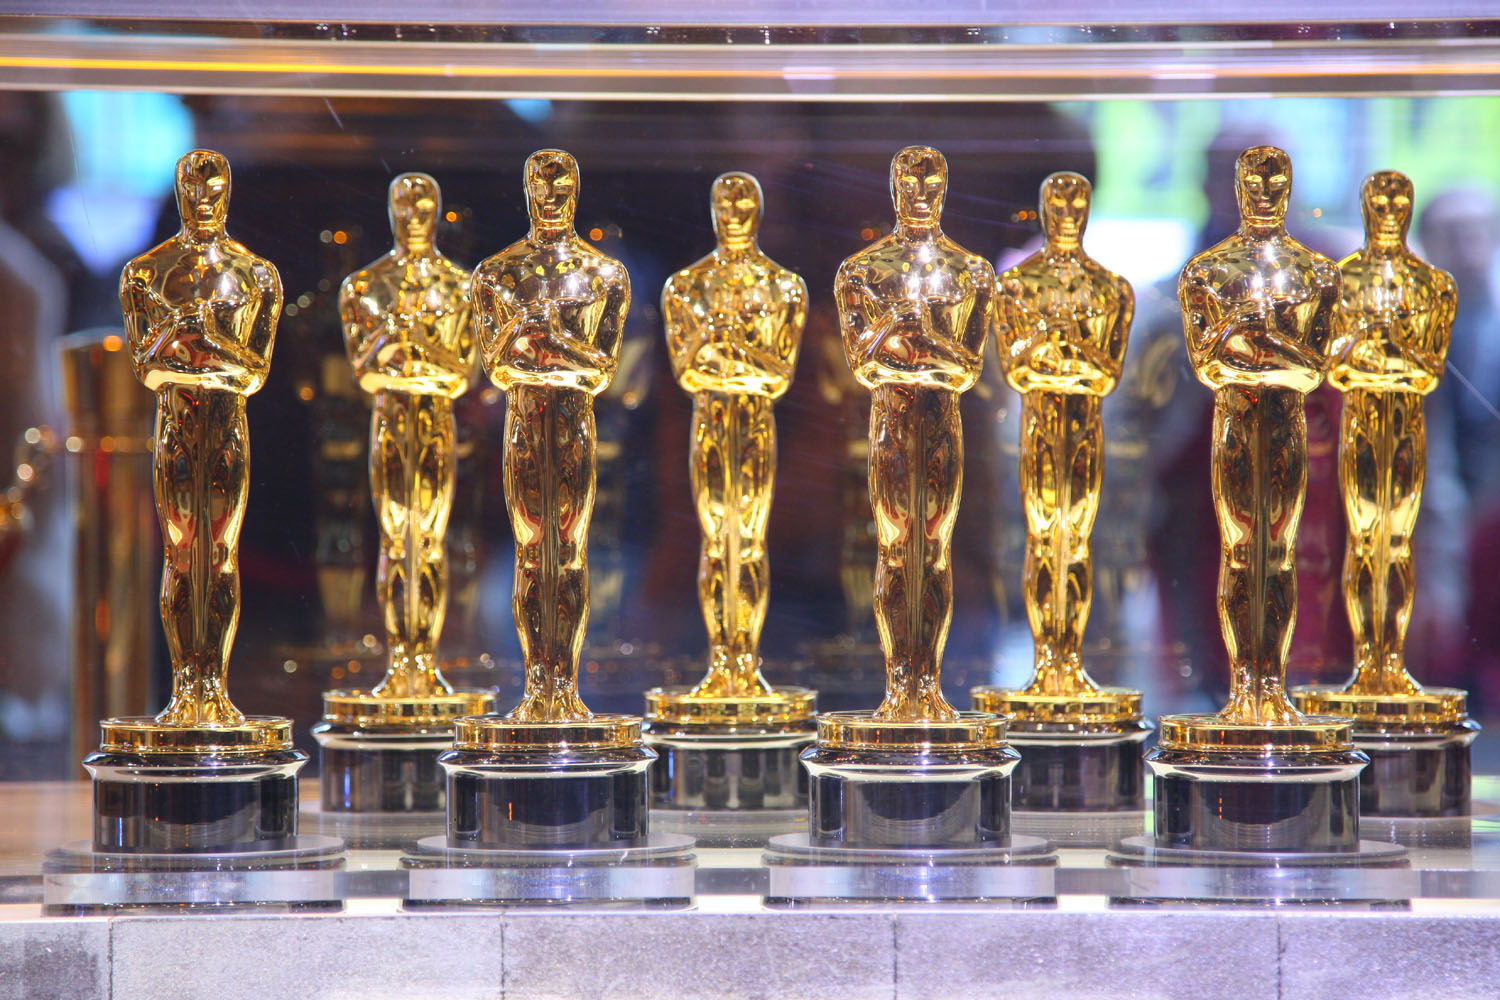 Oscars (Academy Awards)